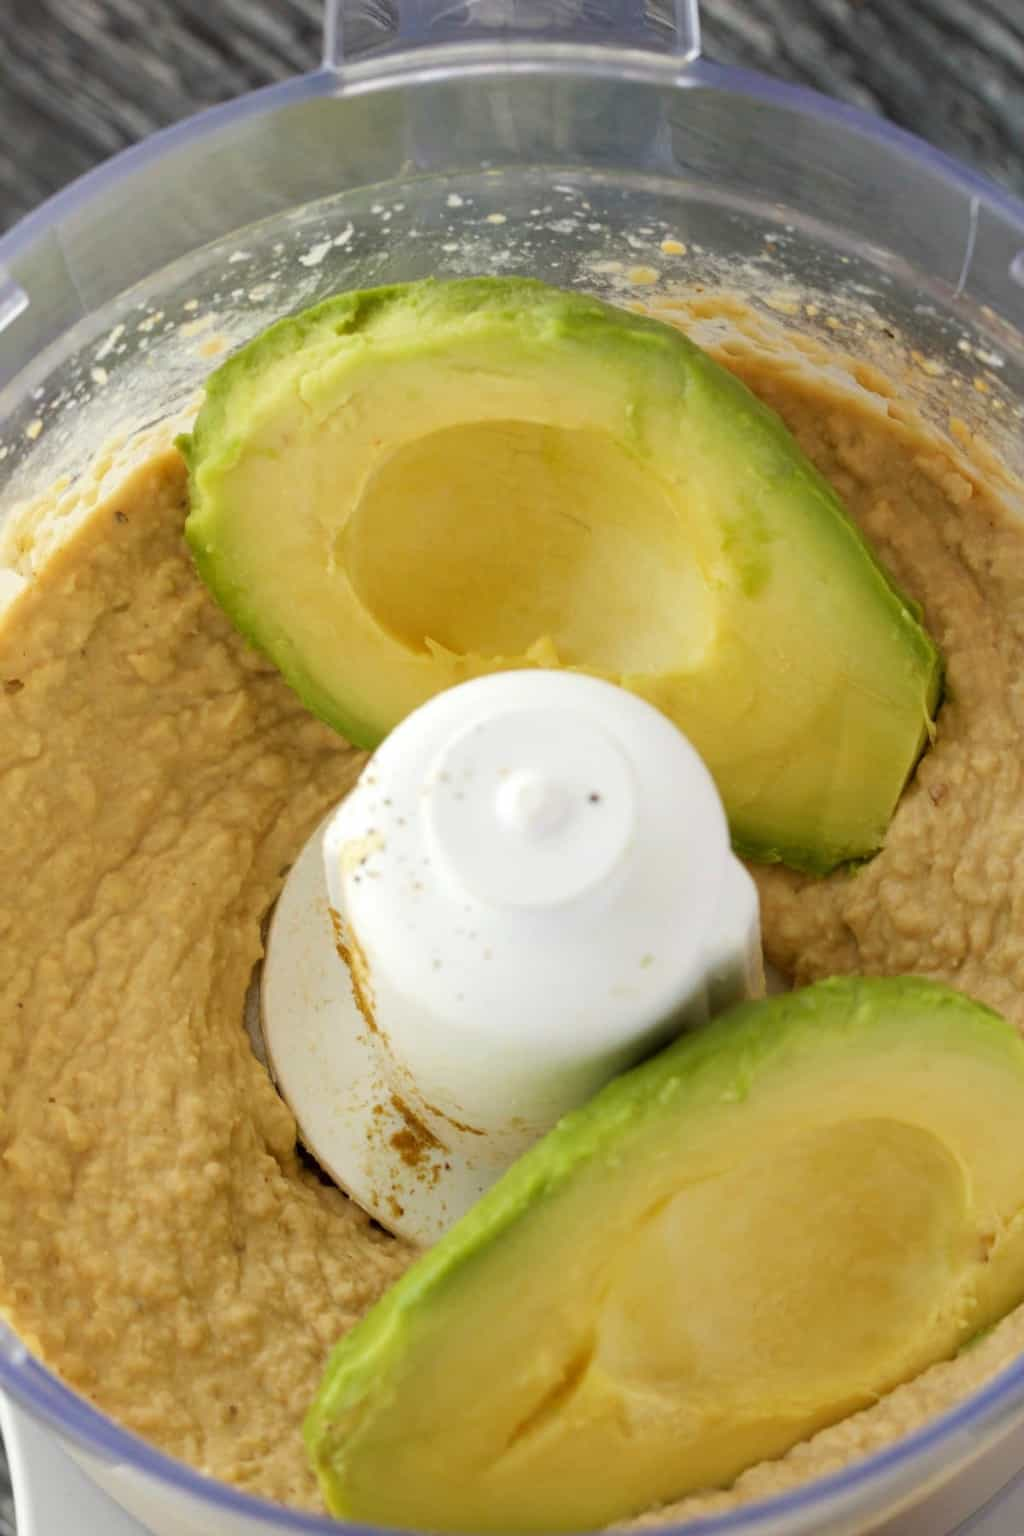 Hummus in a food processor with avocados on top.